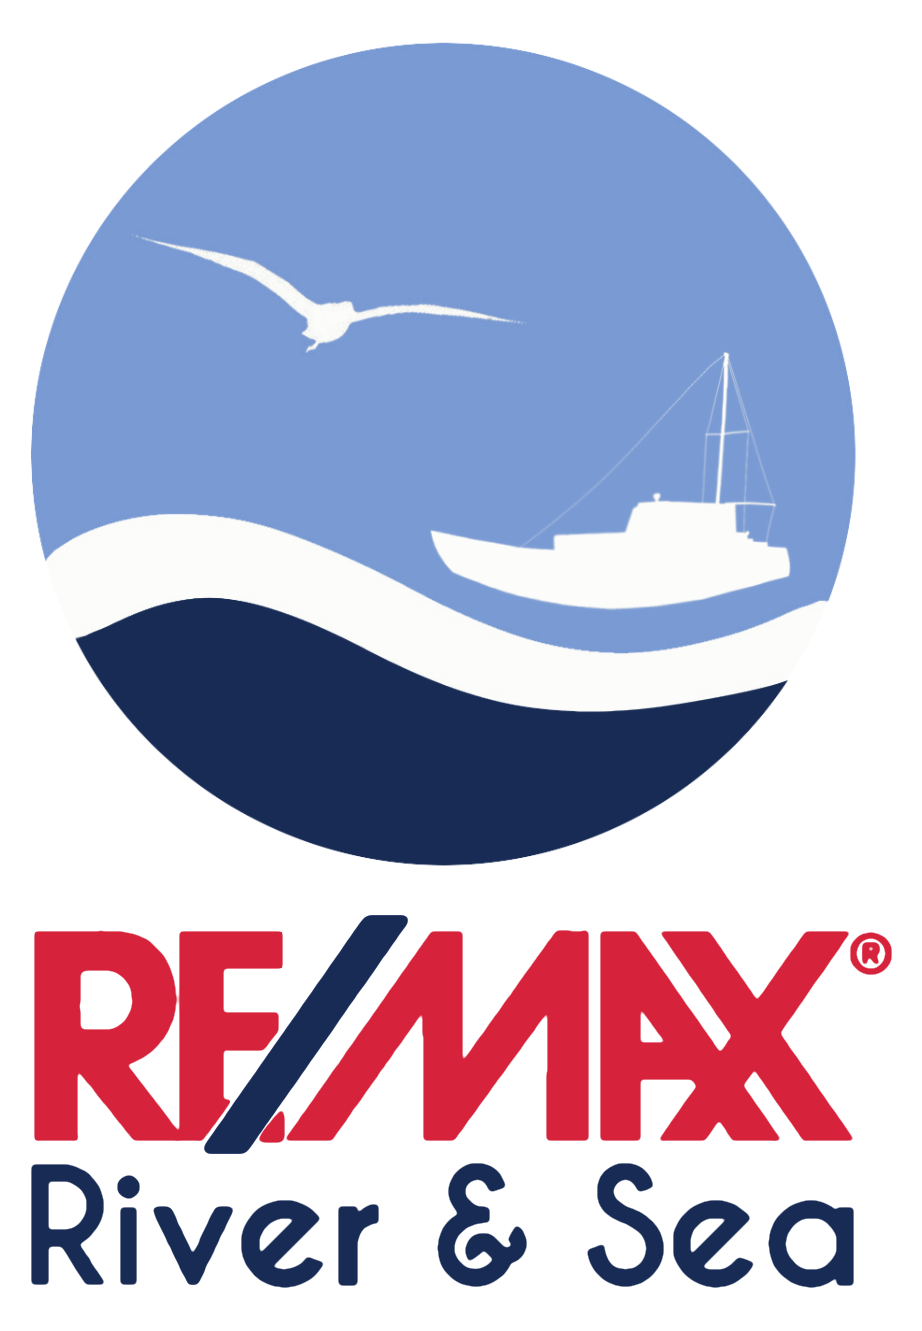 David Hoggard - RE/MAX River & Sea Logo